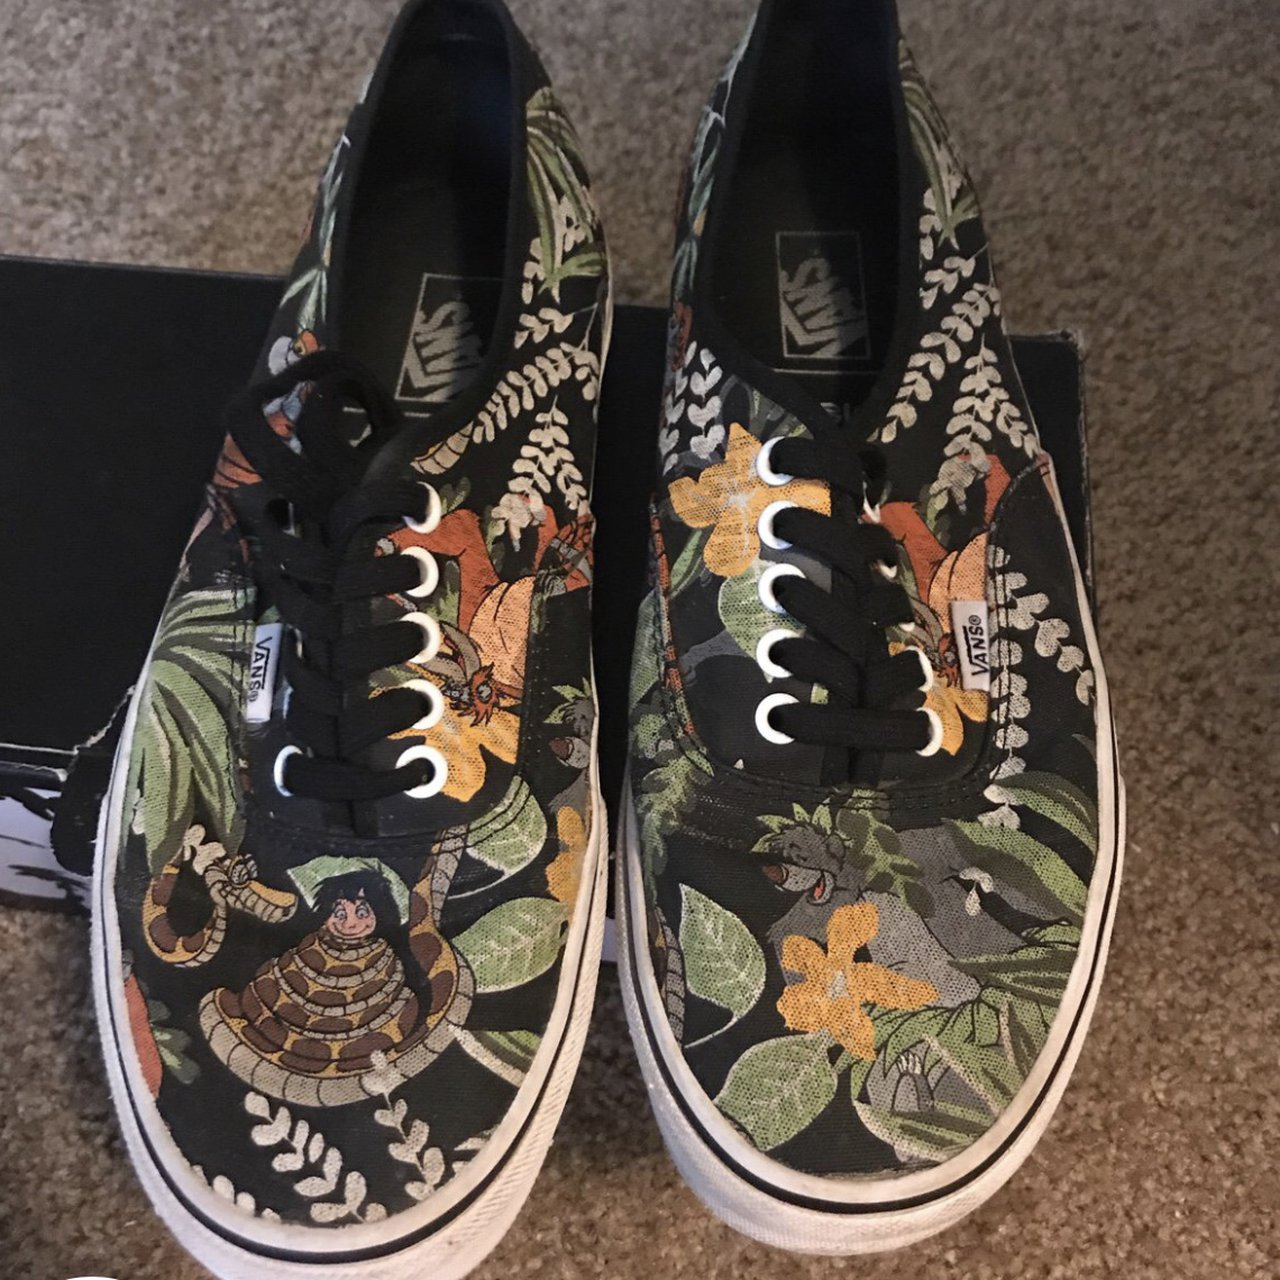 159cd61d1e60c4 Men s Jungle Book Vans size 9.5. Got for an Ex he wore them - Depop